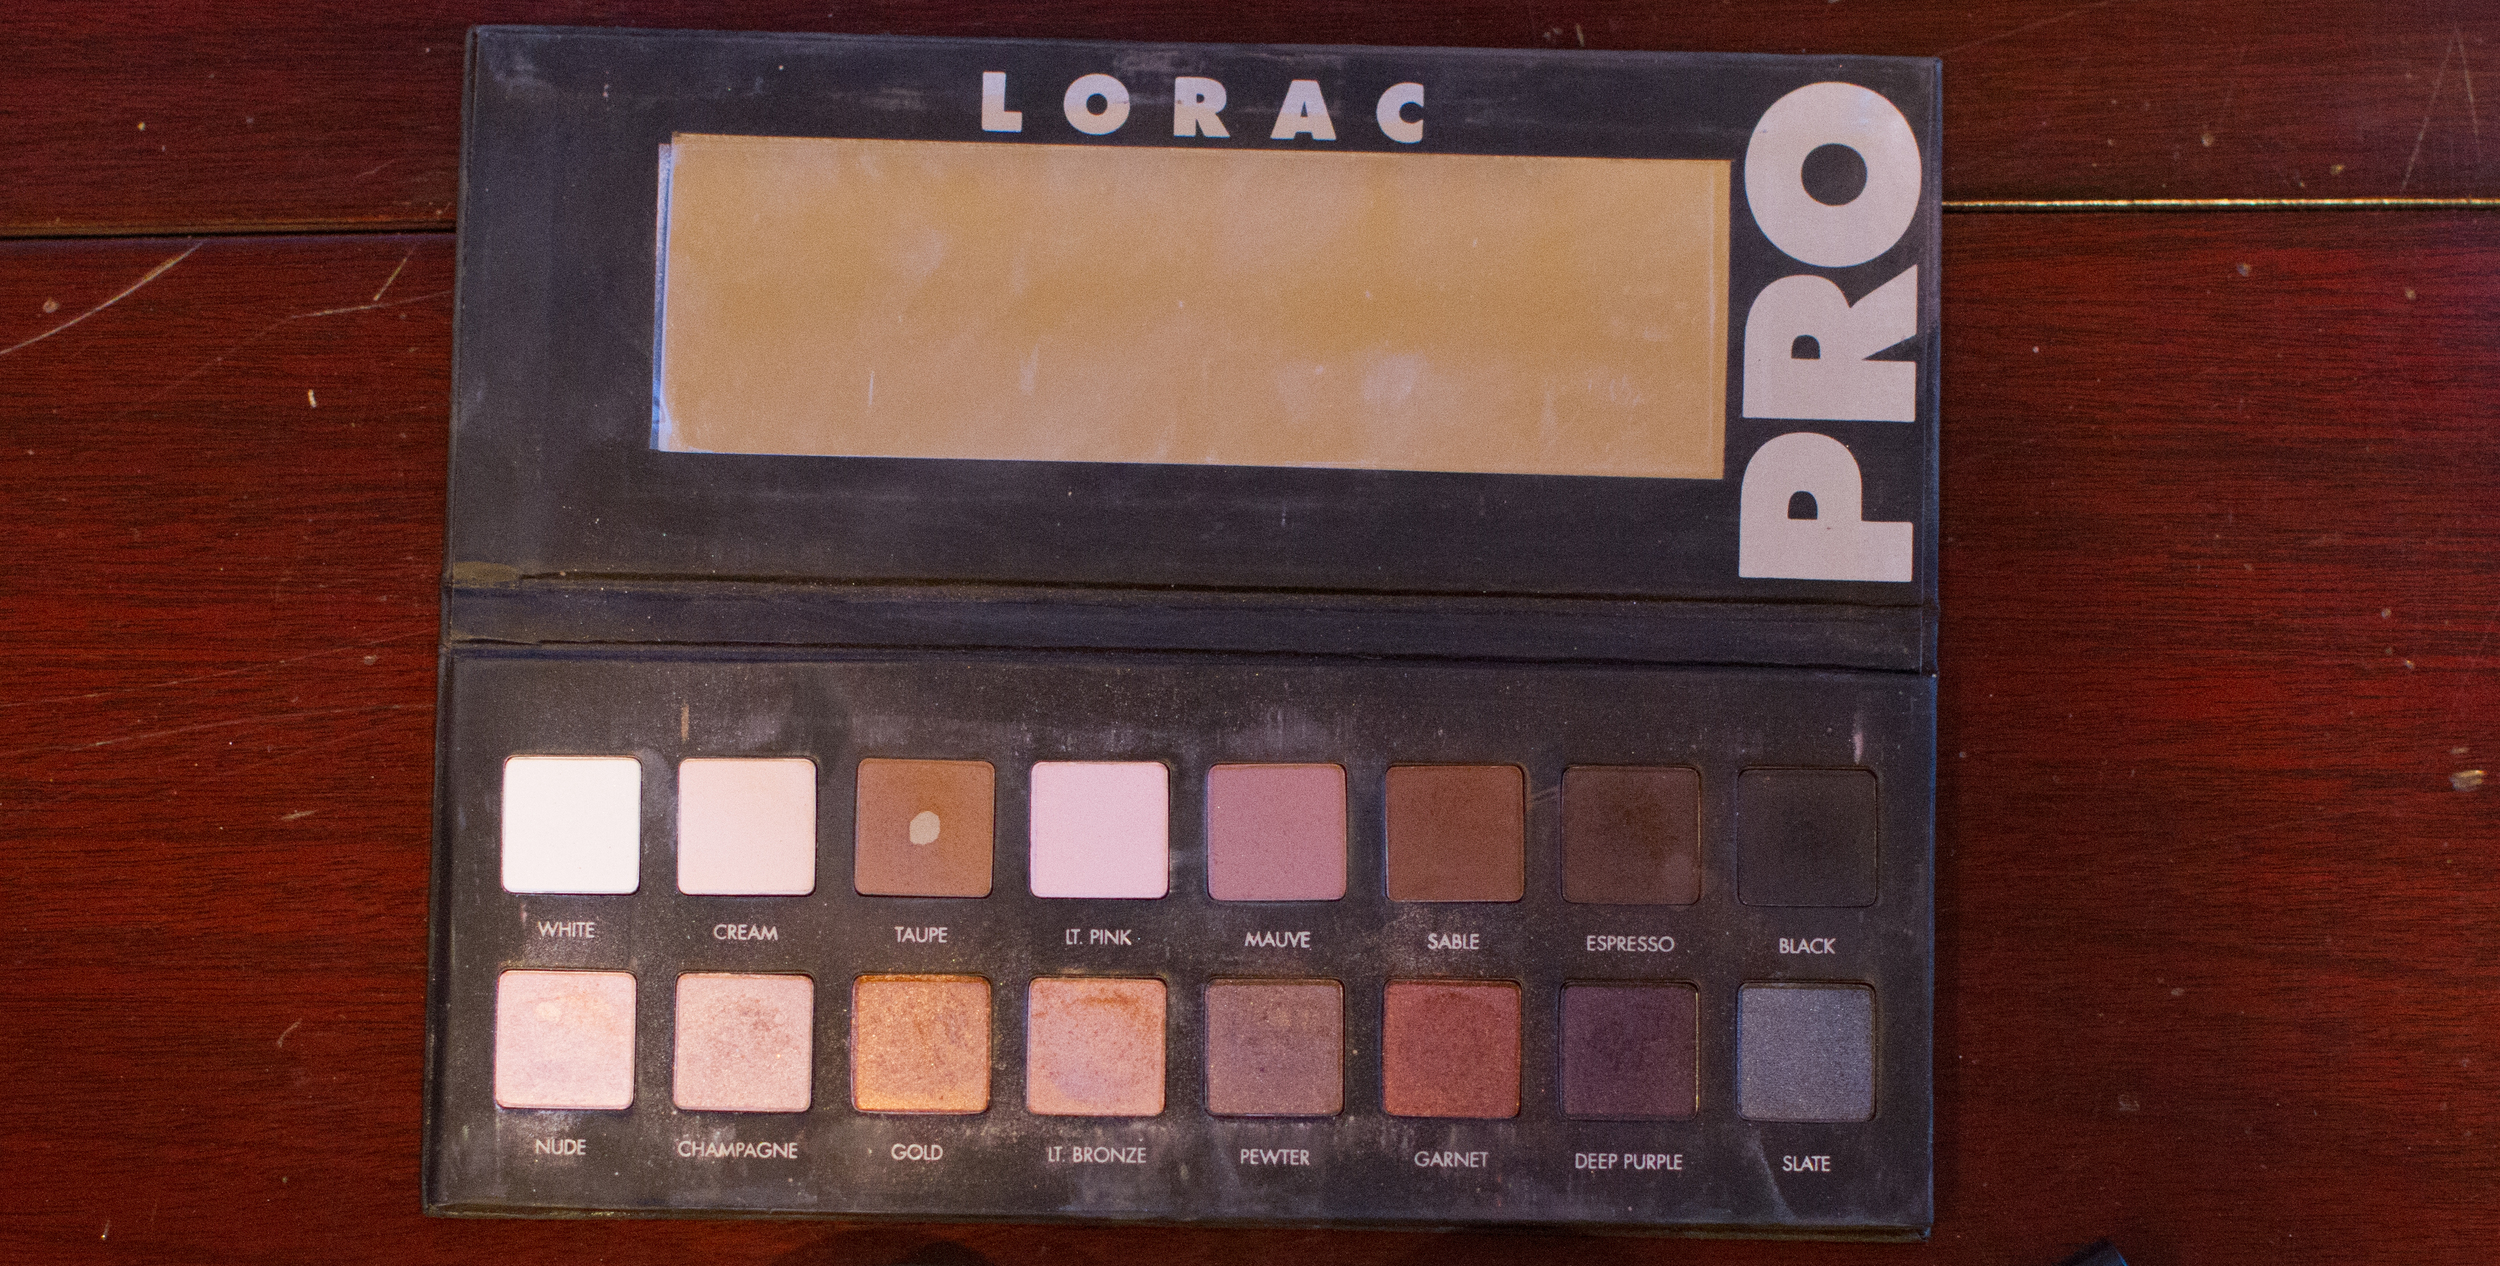 For the crease I blended out Taupe (an obvious go to) from the Lorac Pro palette. Then I mixed Espresso and black for the outter V of the eye.